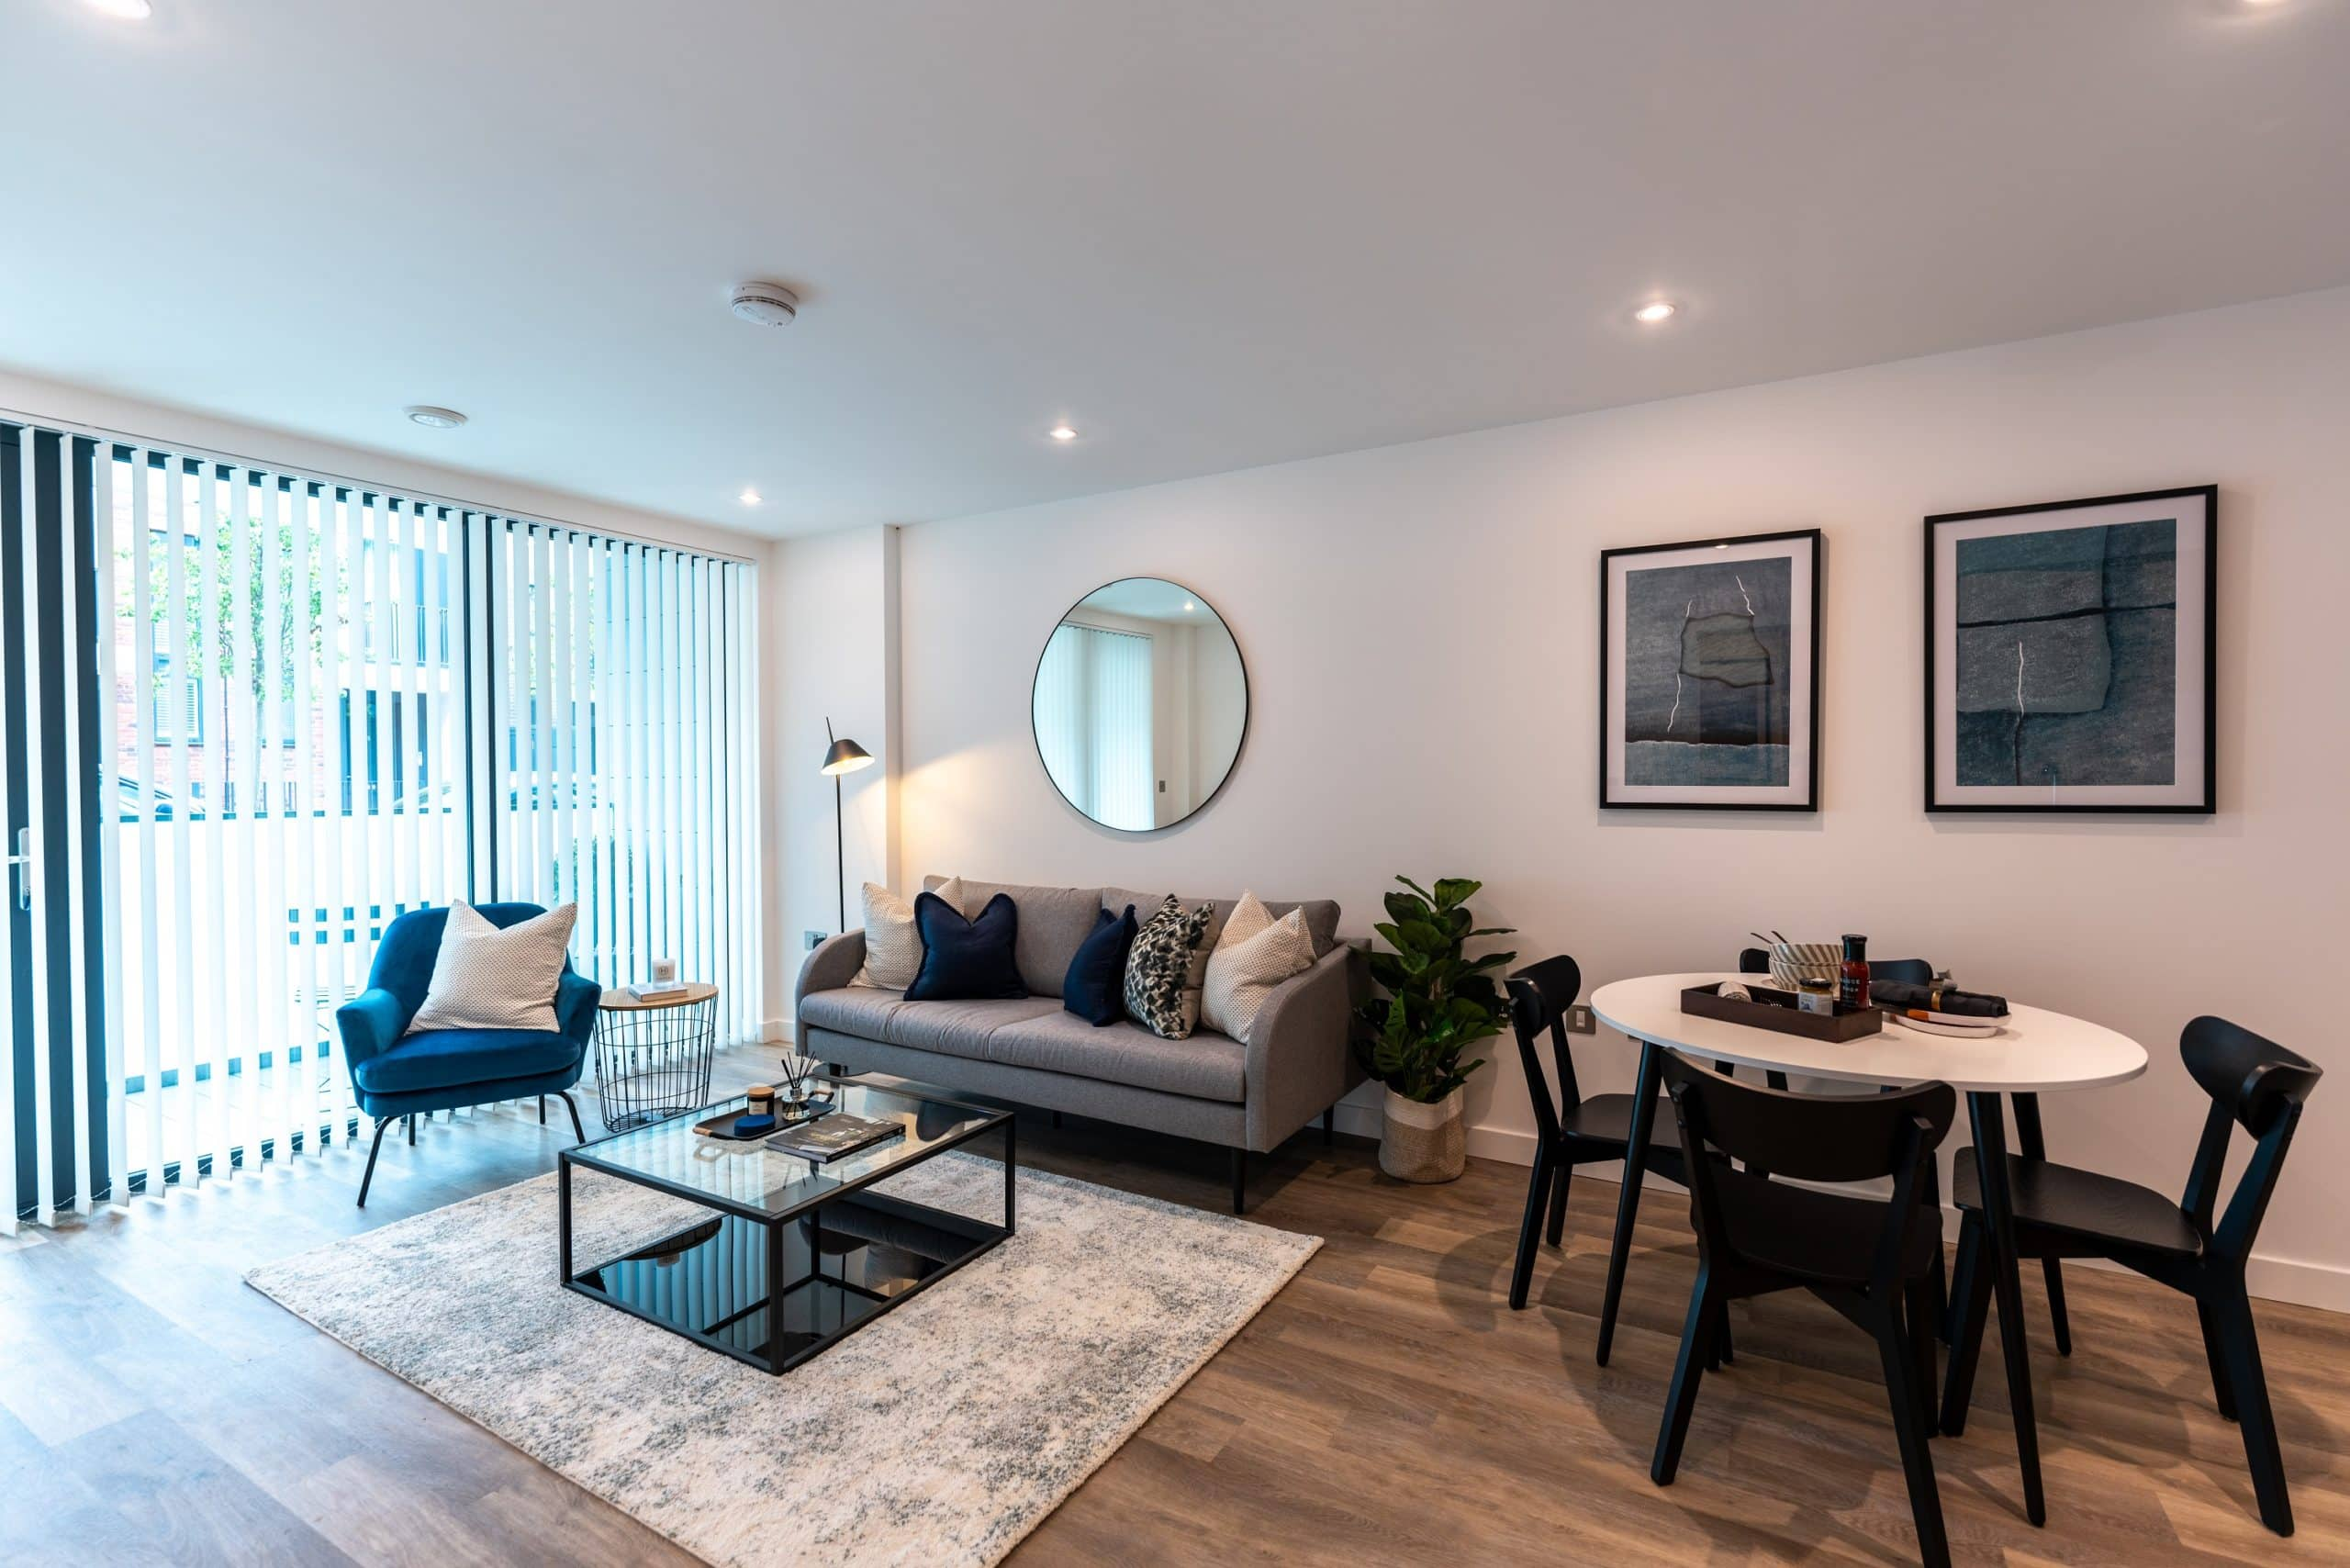 Internal show home photography of L&Q at Greenwich Square - Shared Ownership homes available on Share to Buy